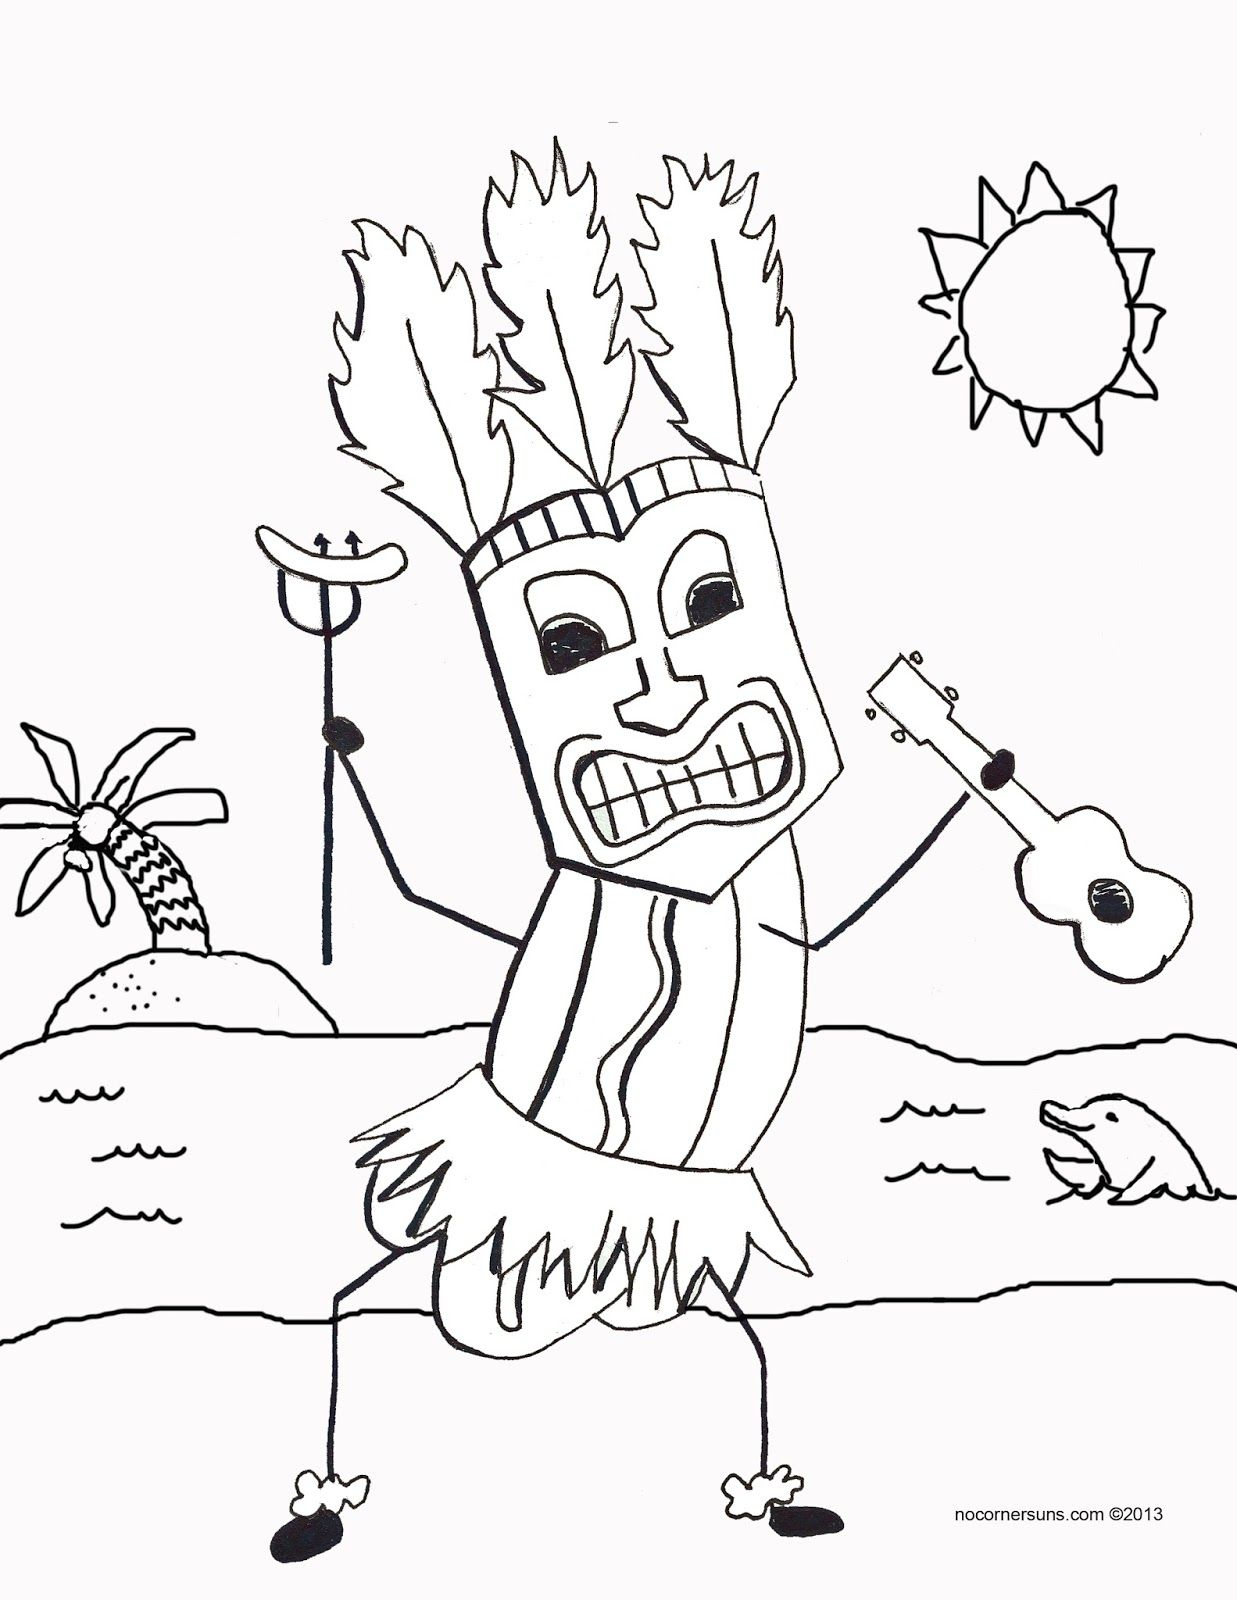 Tiki Hot Dog With Ukulele Coloring Page